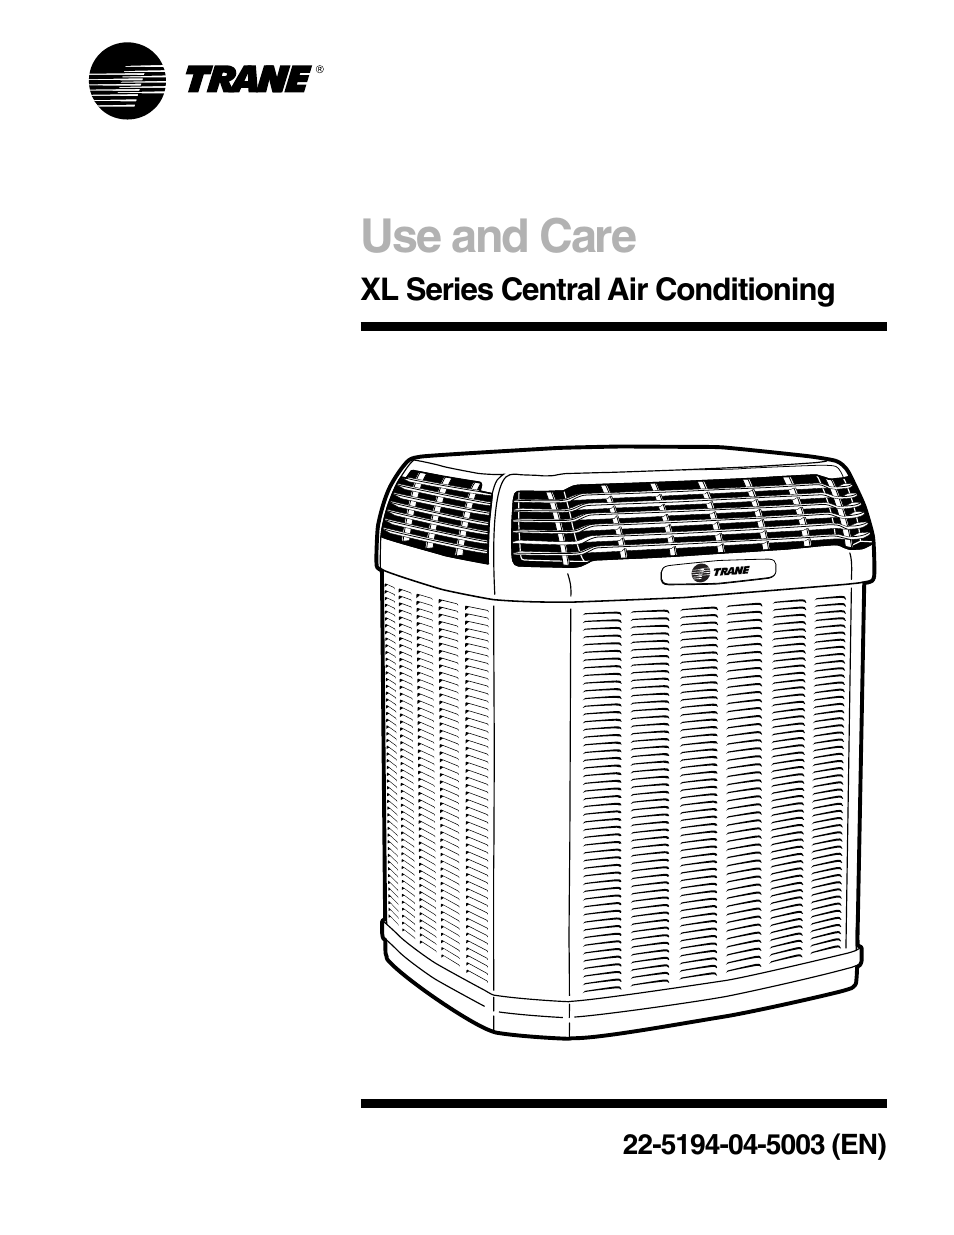 Trane 4ttx4 User Manual 6 Pages Also For 4ttx3 2ttx4